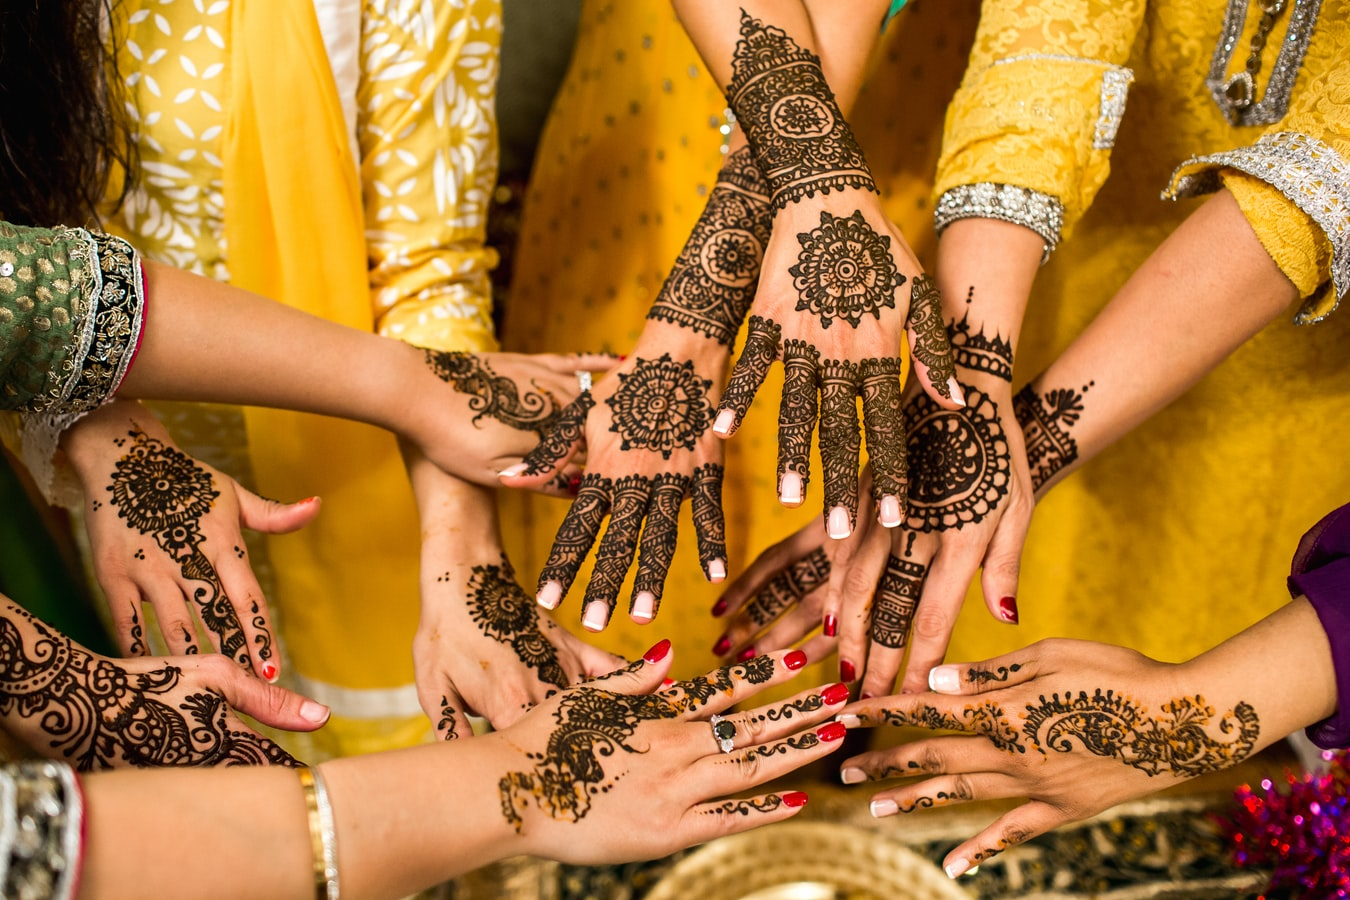 Hands with henna (mehendi) on them